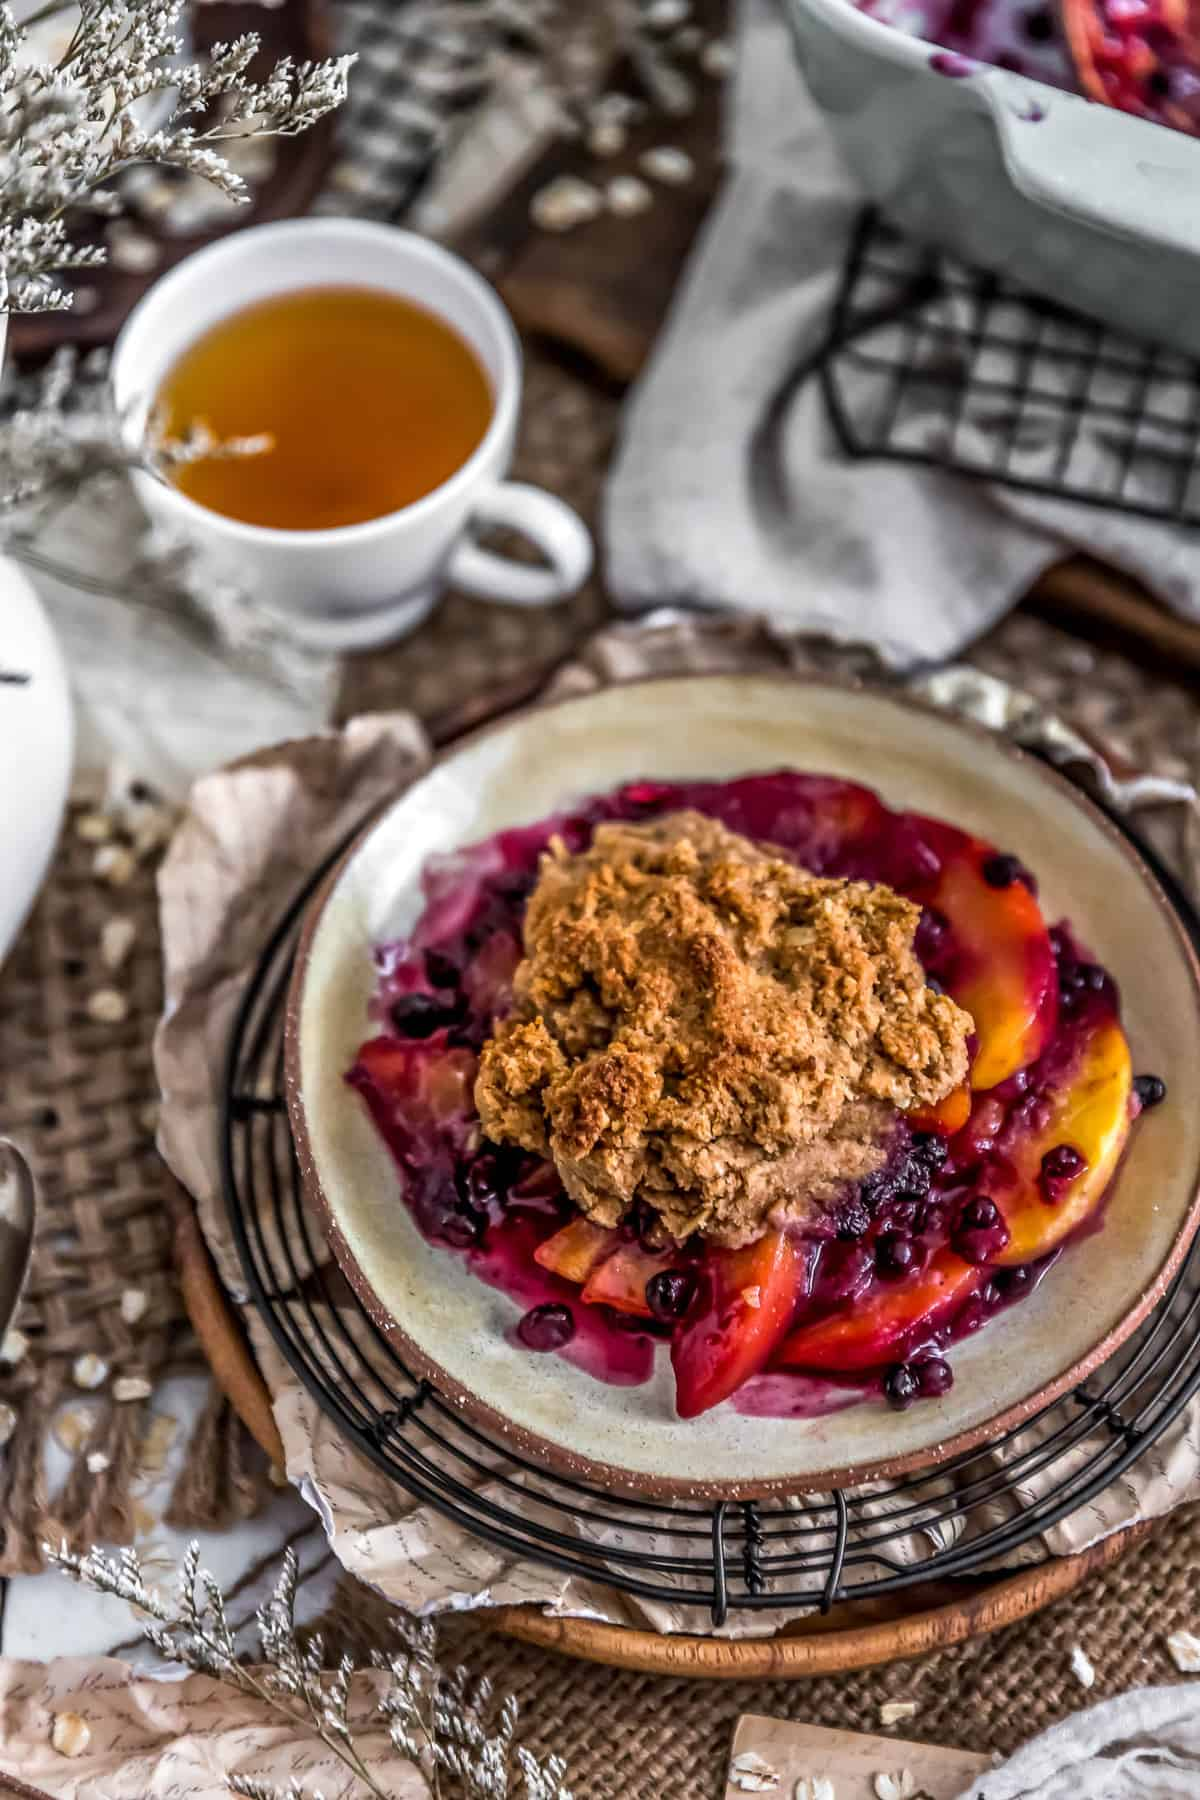 Tablescape of Peach Blueberry Biscuit Cobbler